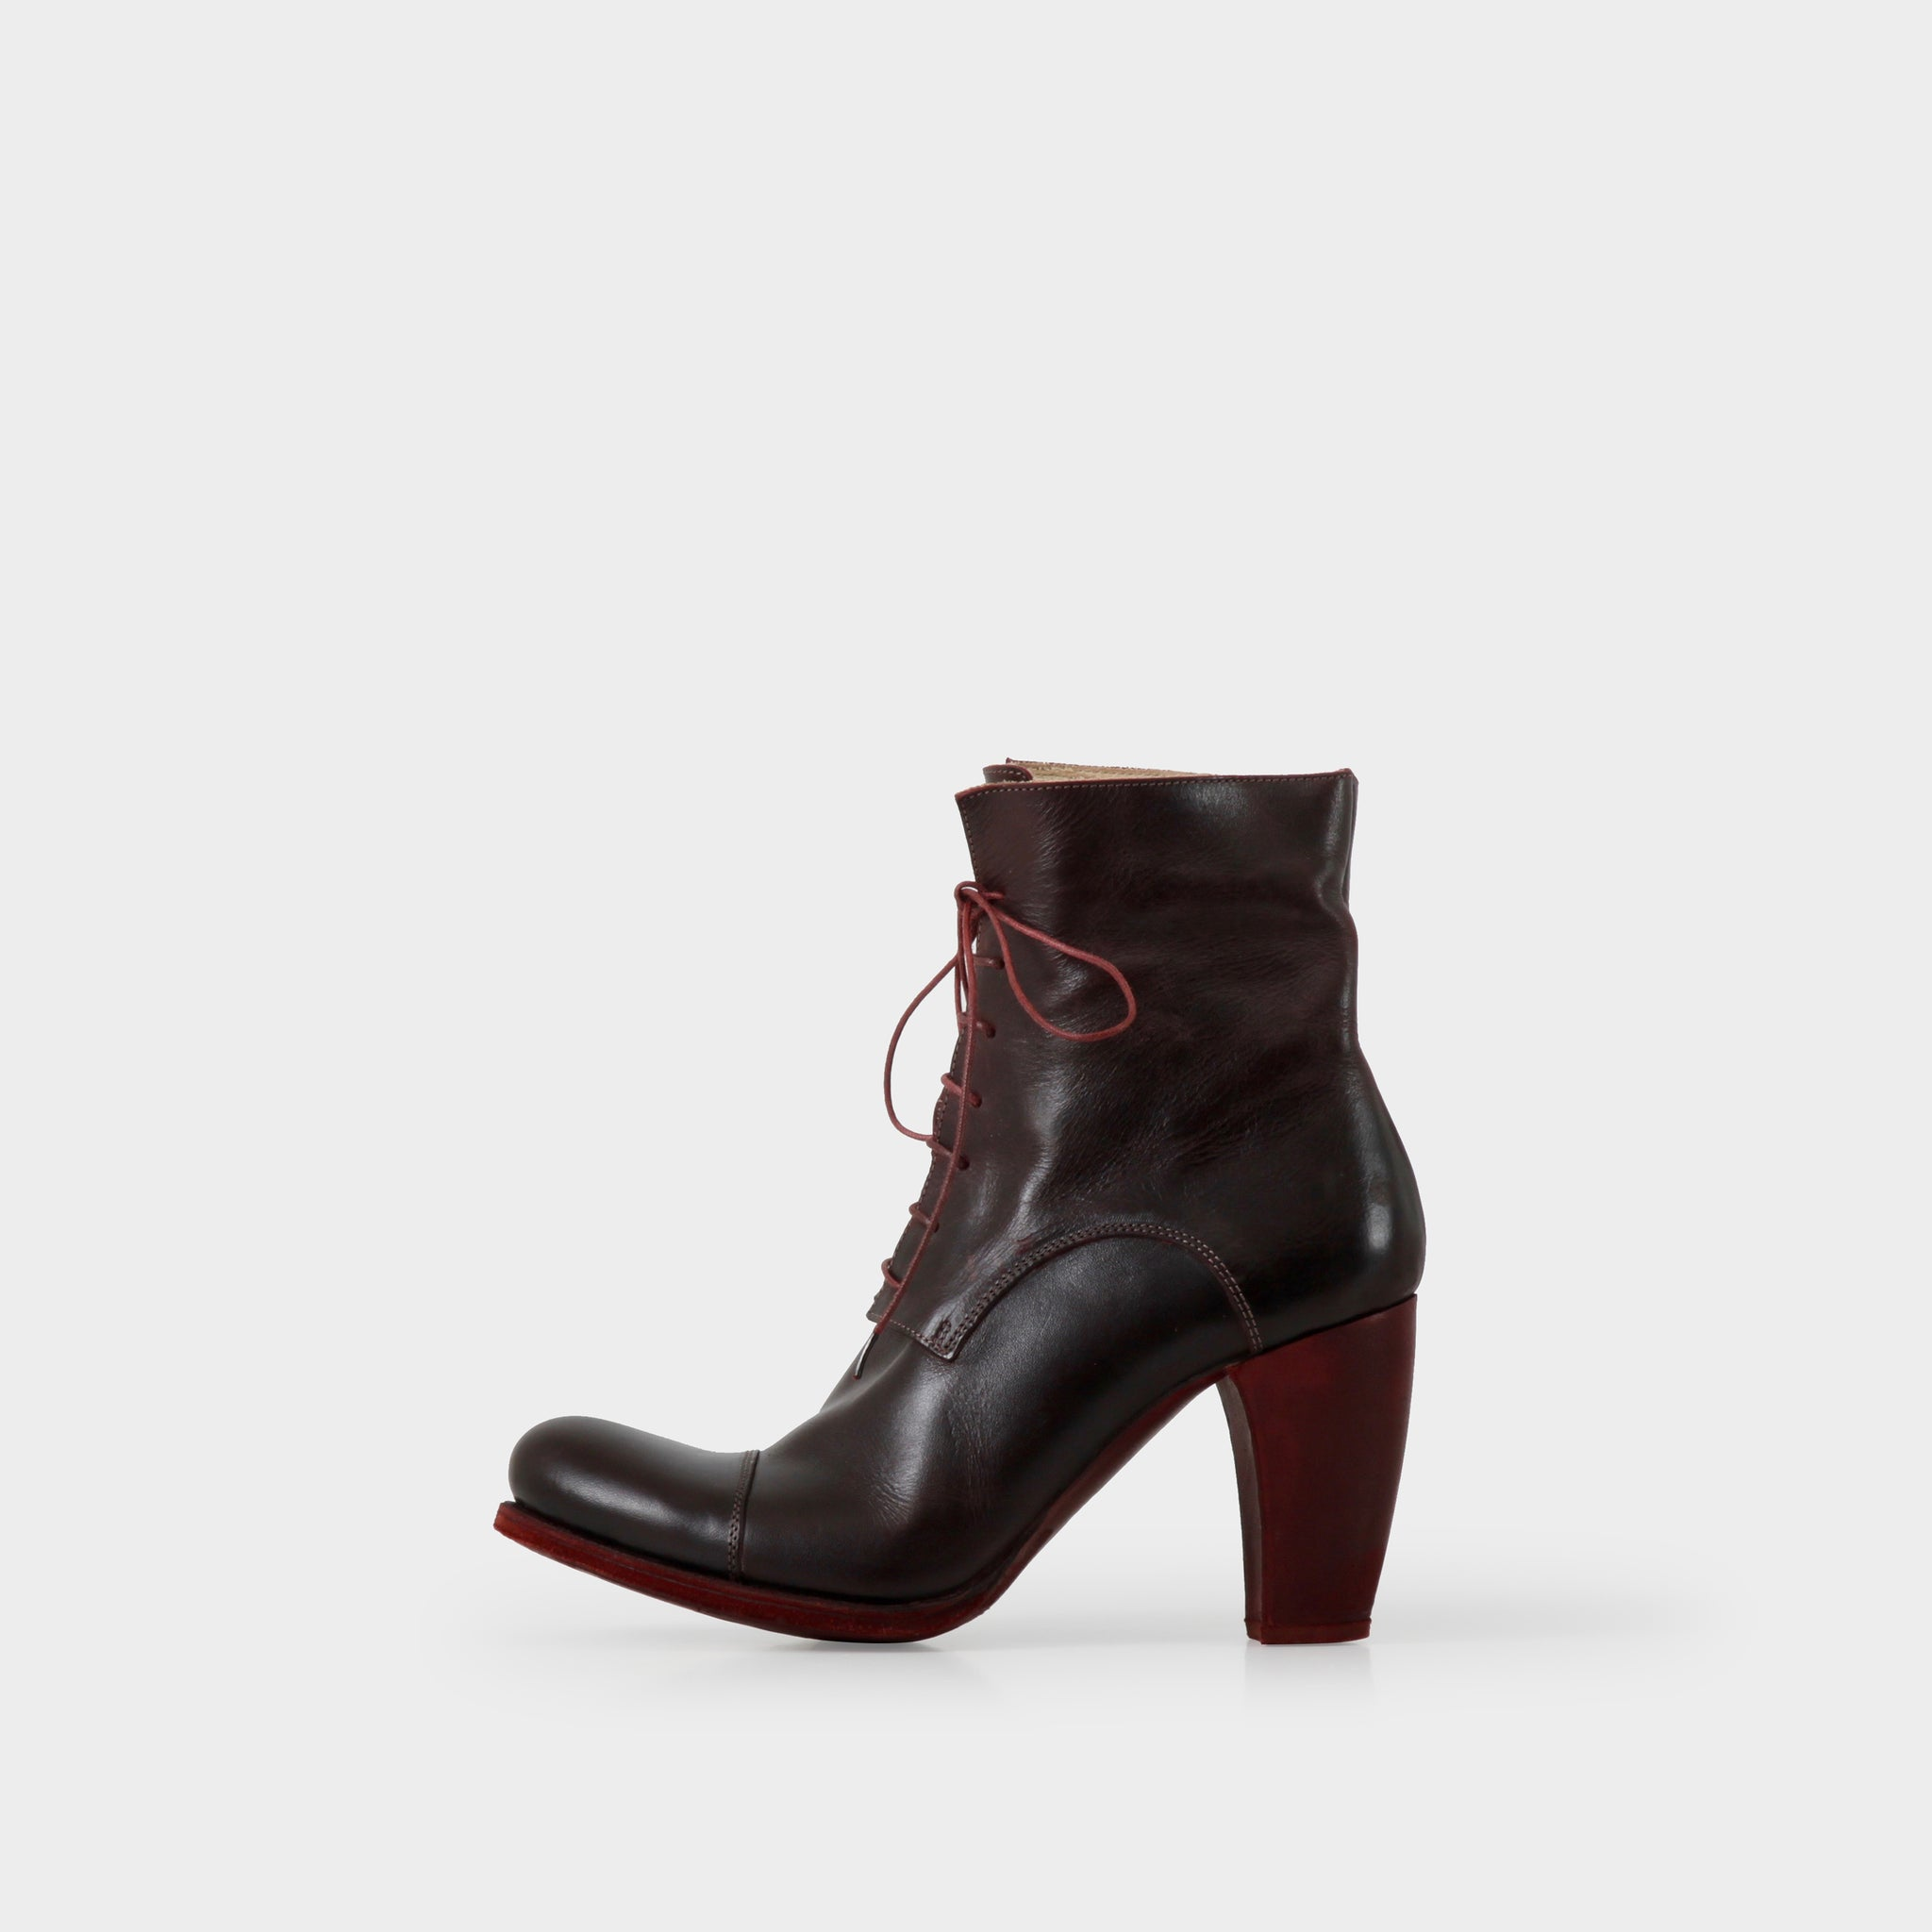 MA+ Oxblood Laceup Heeled Boots